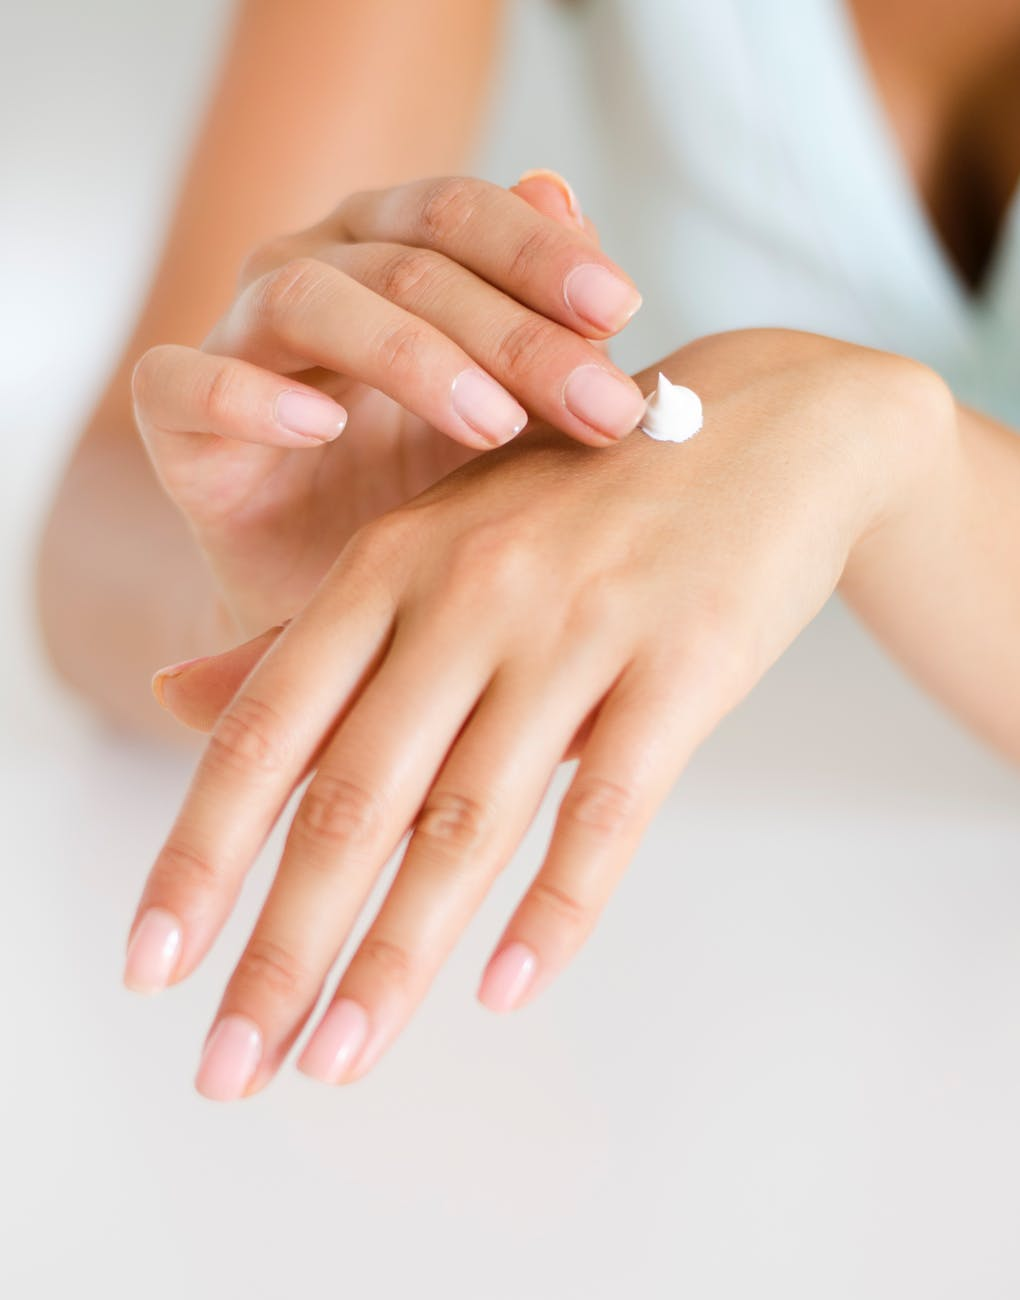 applying body lotion care cosmetic product